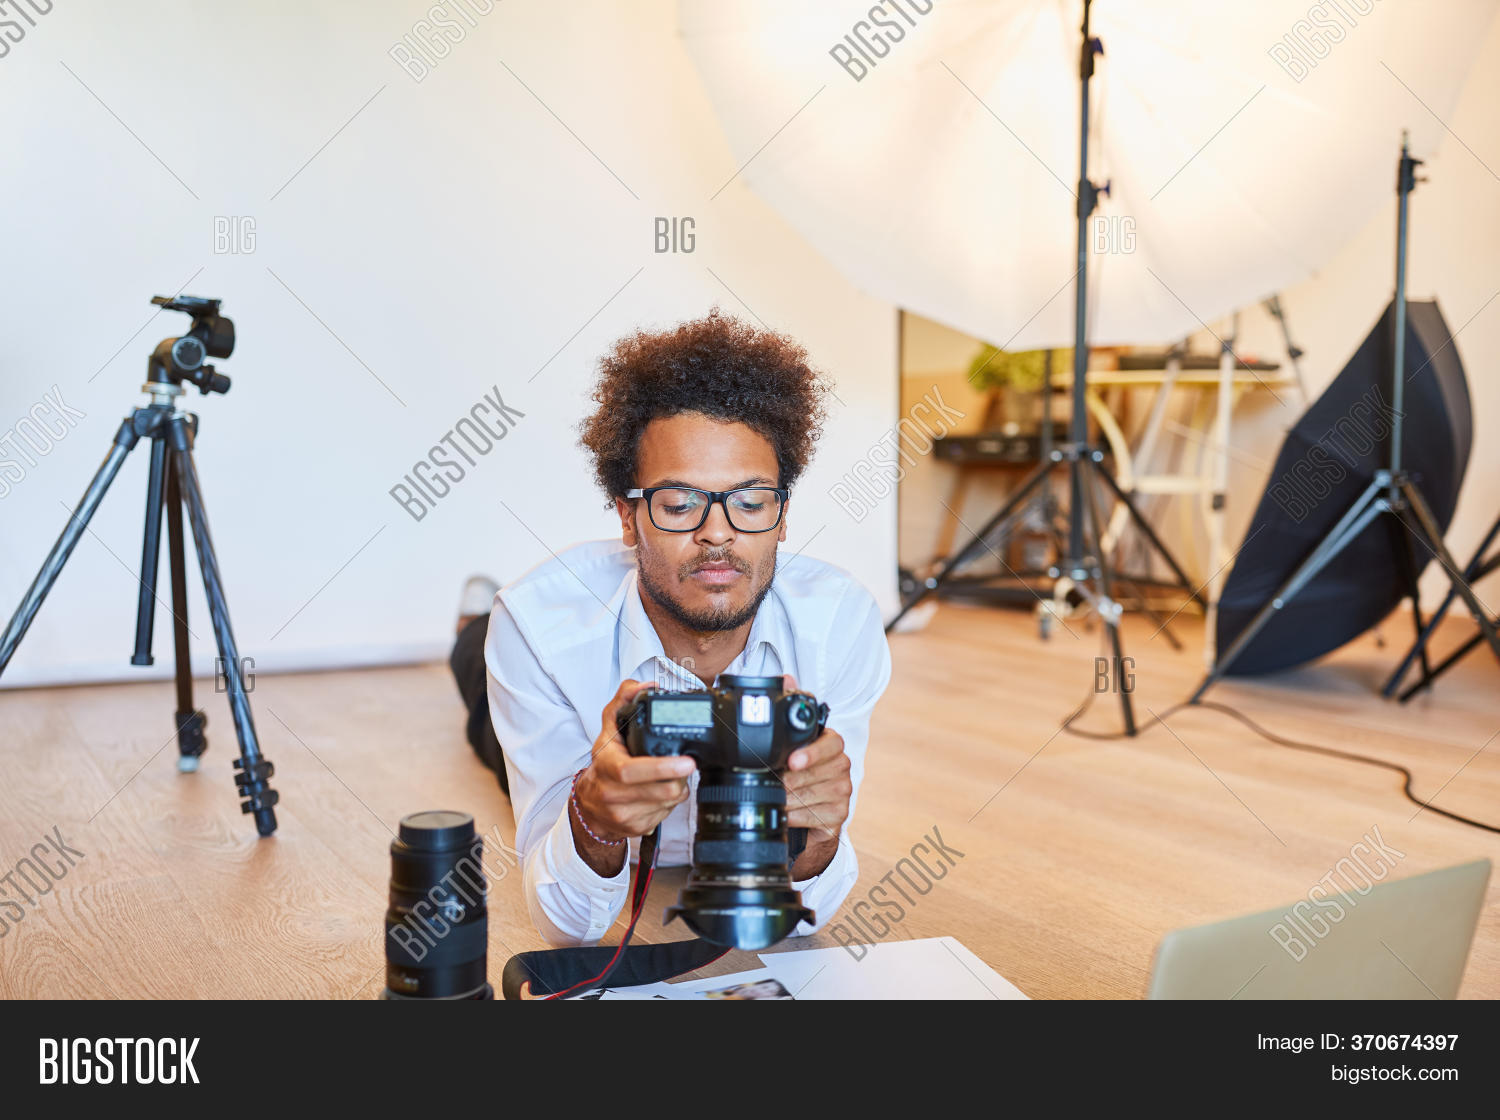 Young photographer in the photo studio or photo school inspects digital camera